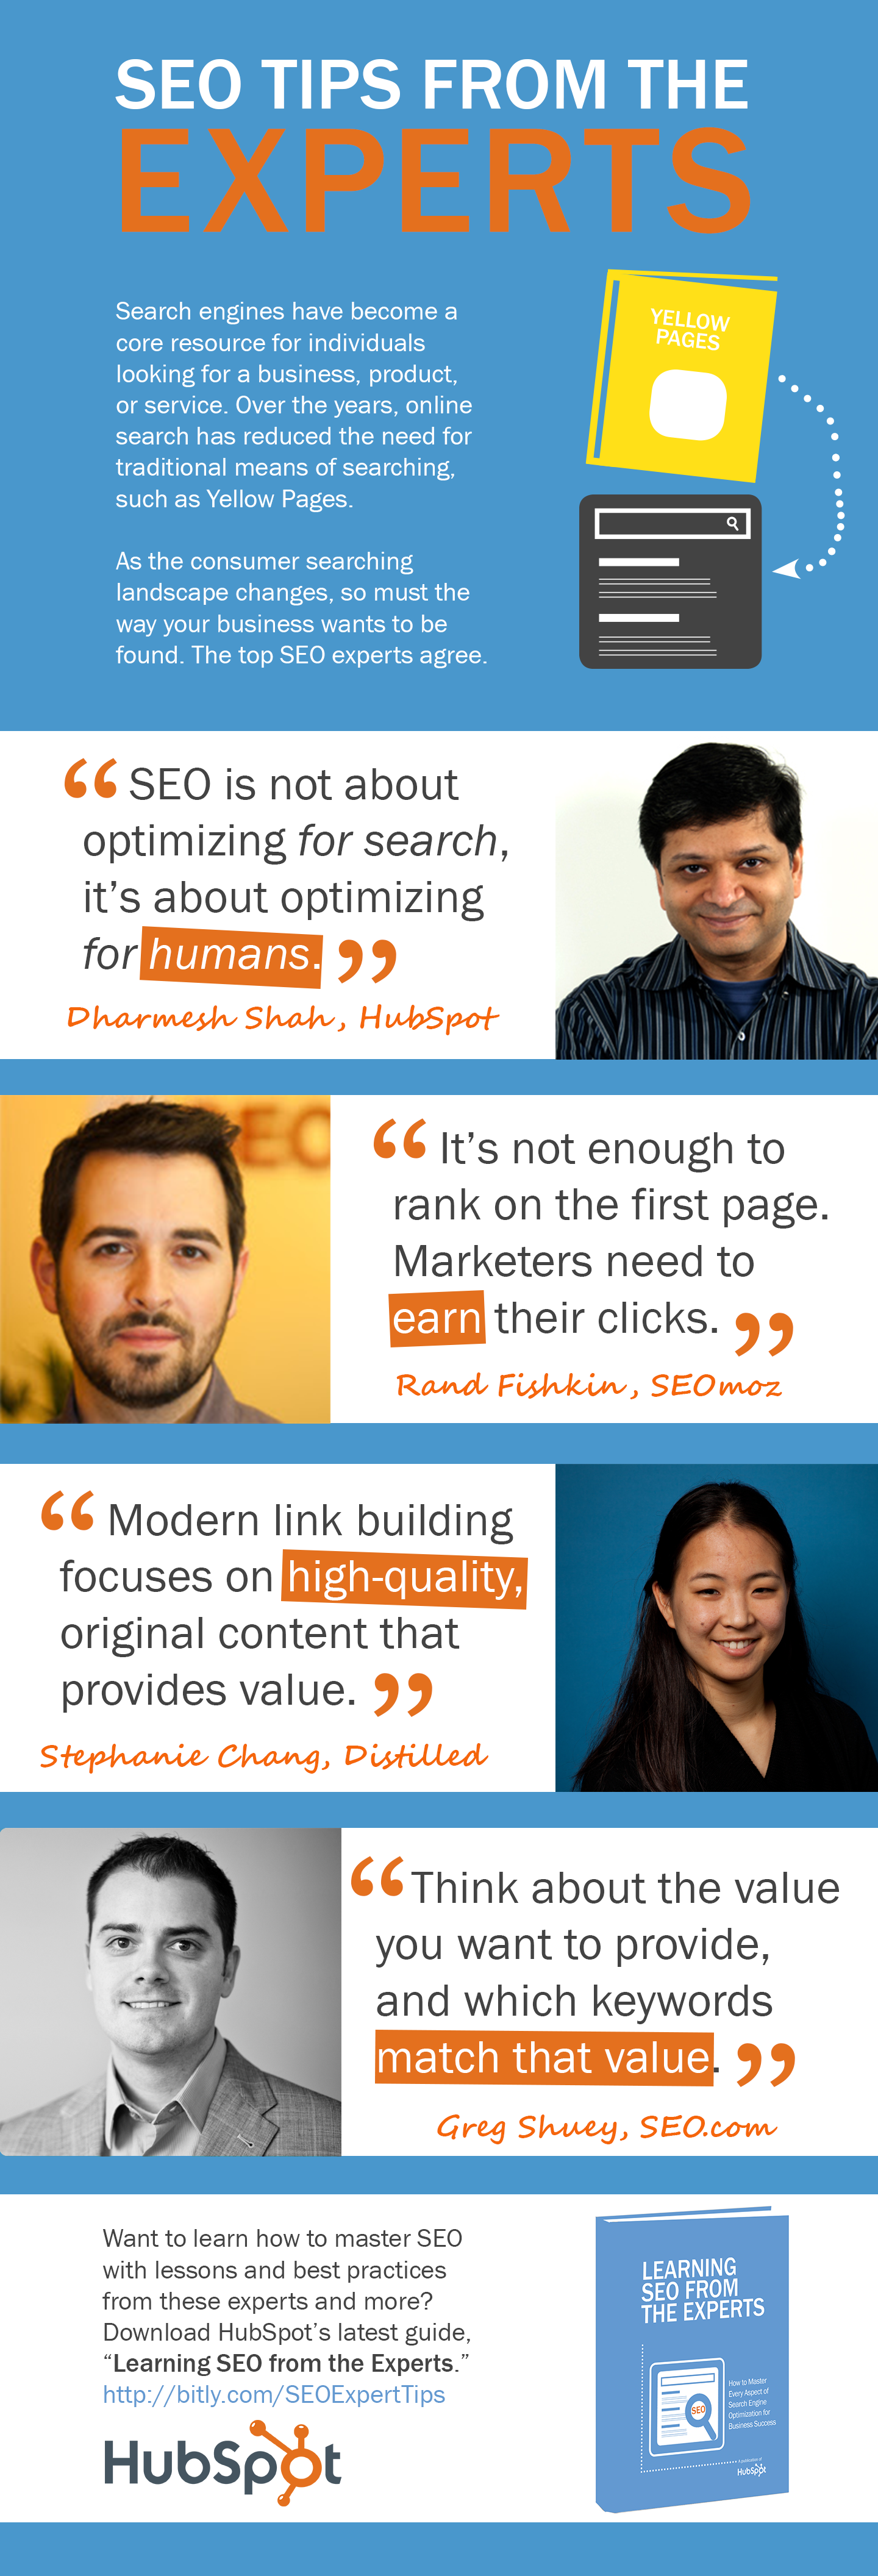 4 Important SEO Tips from Industry Experts